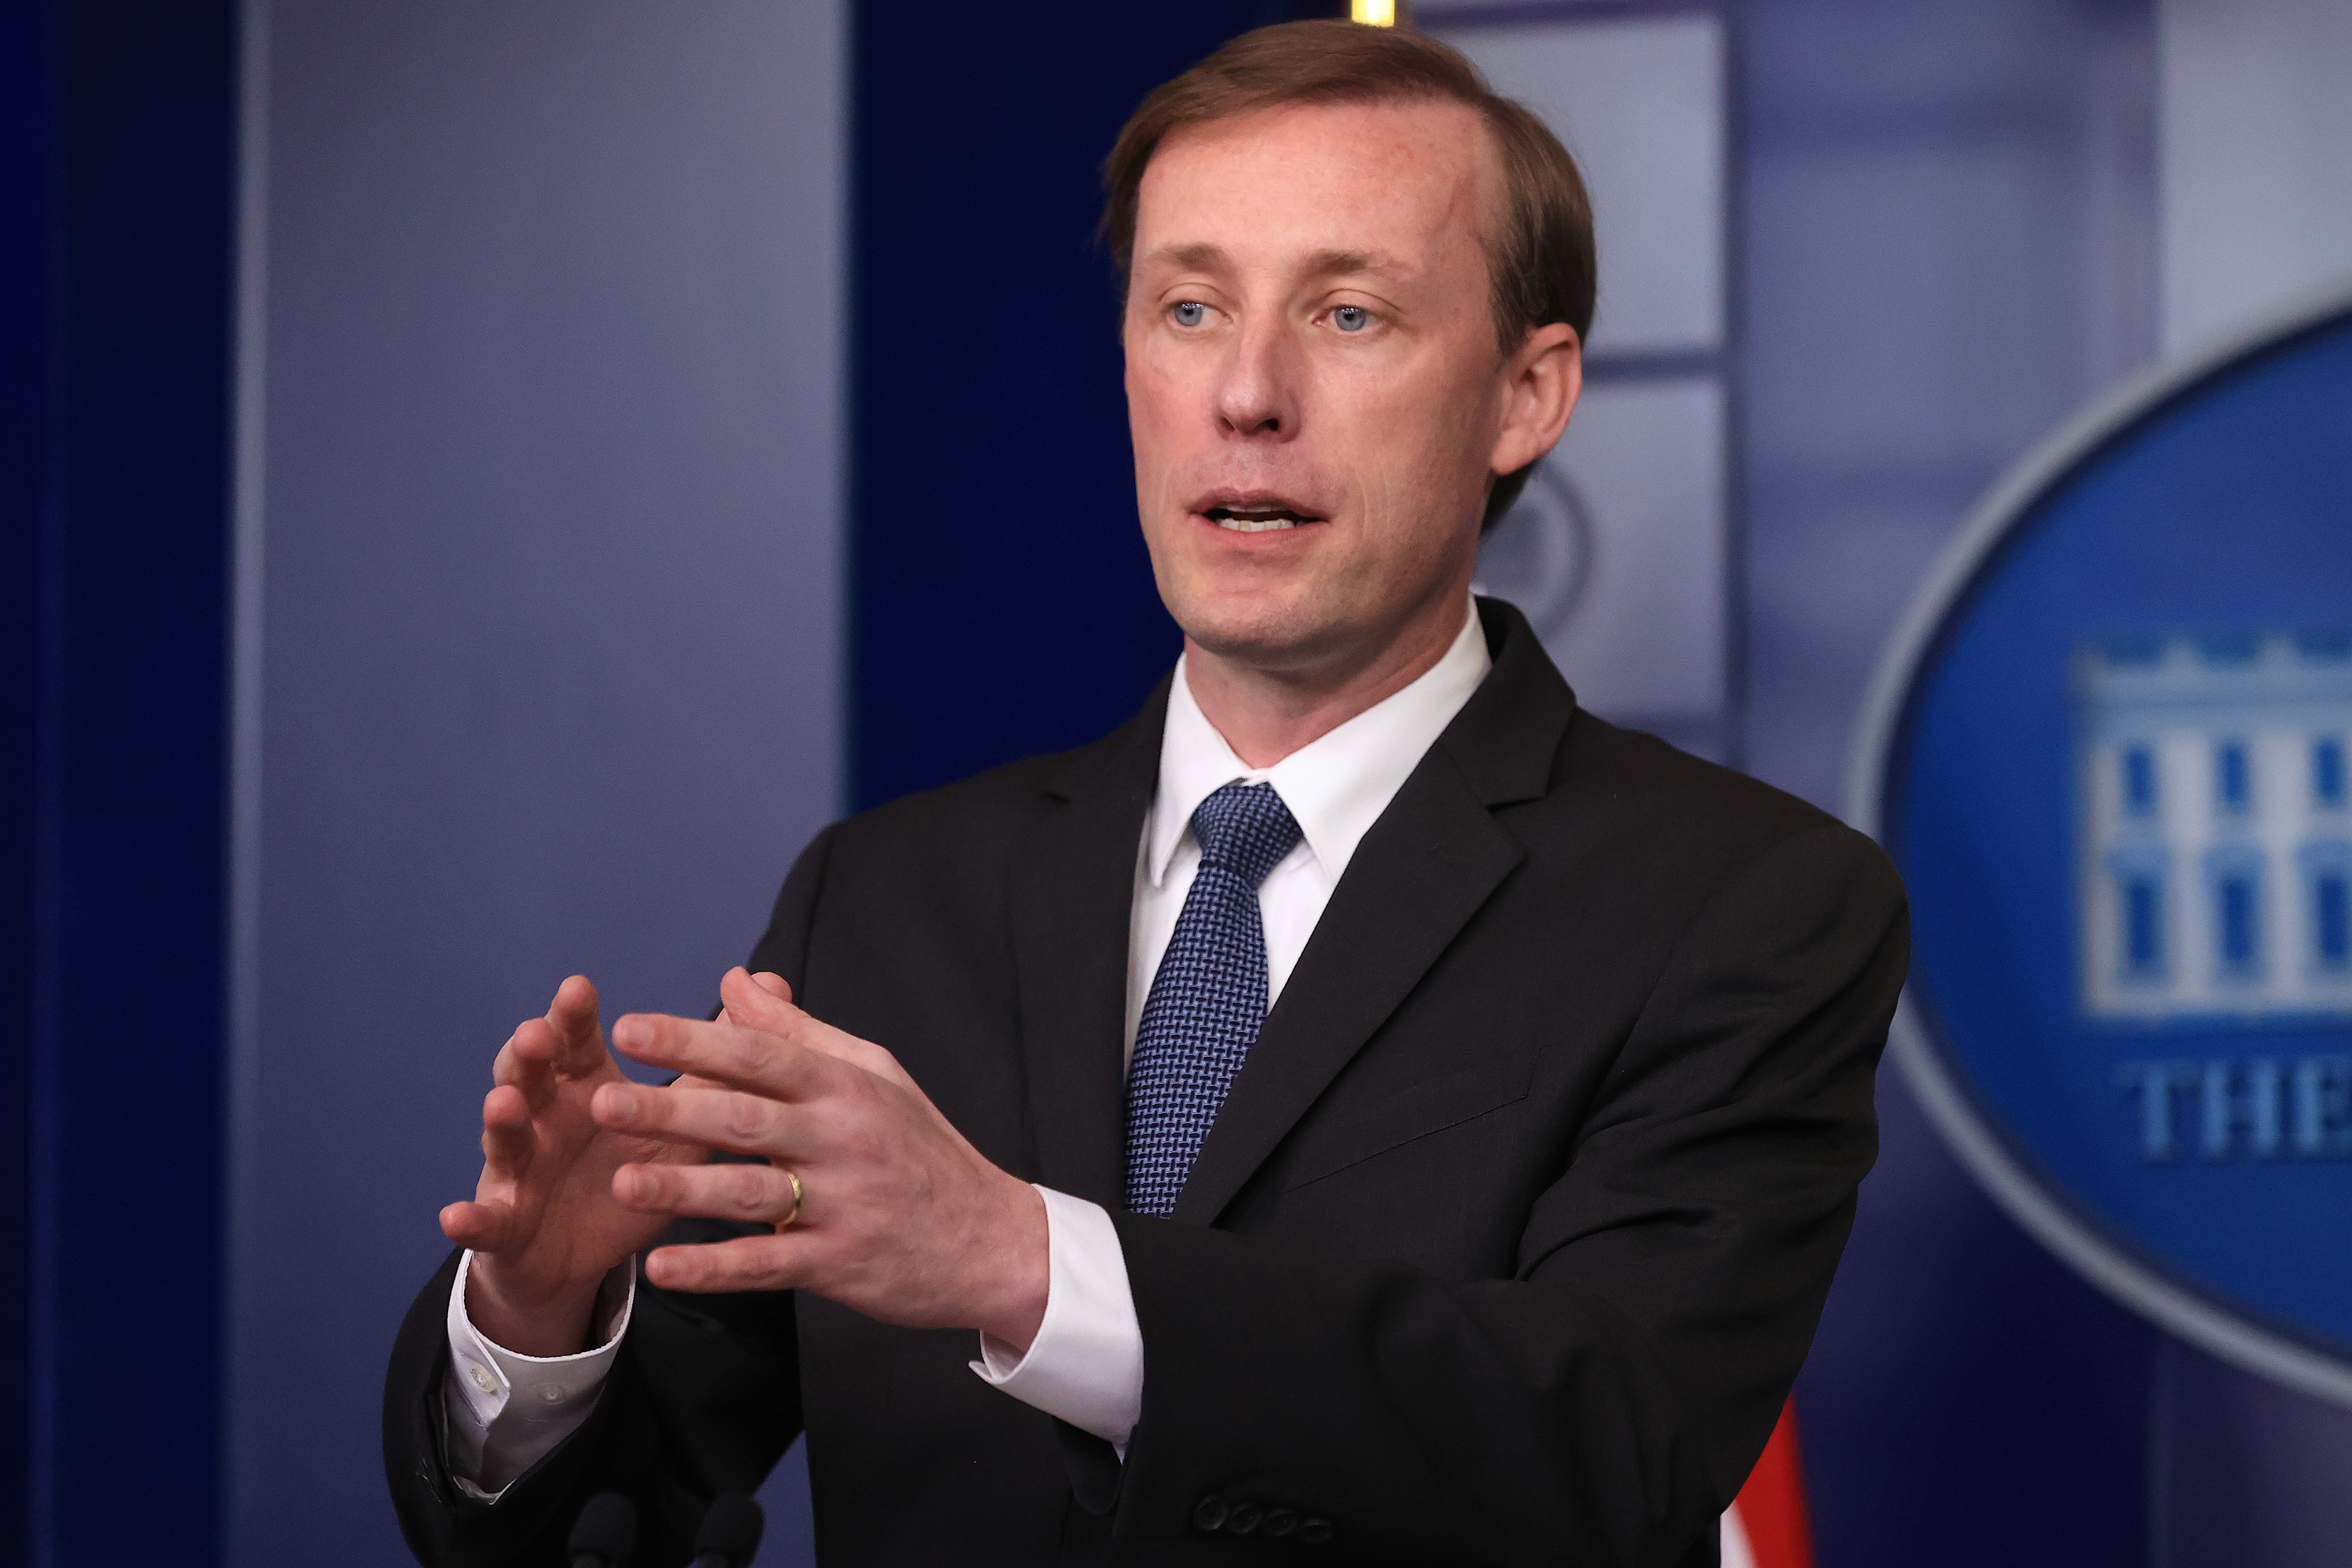 National Security Adviser Jake Sullivan talks to reporters during the daily news conference in the Brady Press Briefing Room at the White House in Washington, D.C. (Photo by Chip Somodevilla/Getty Images)